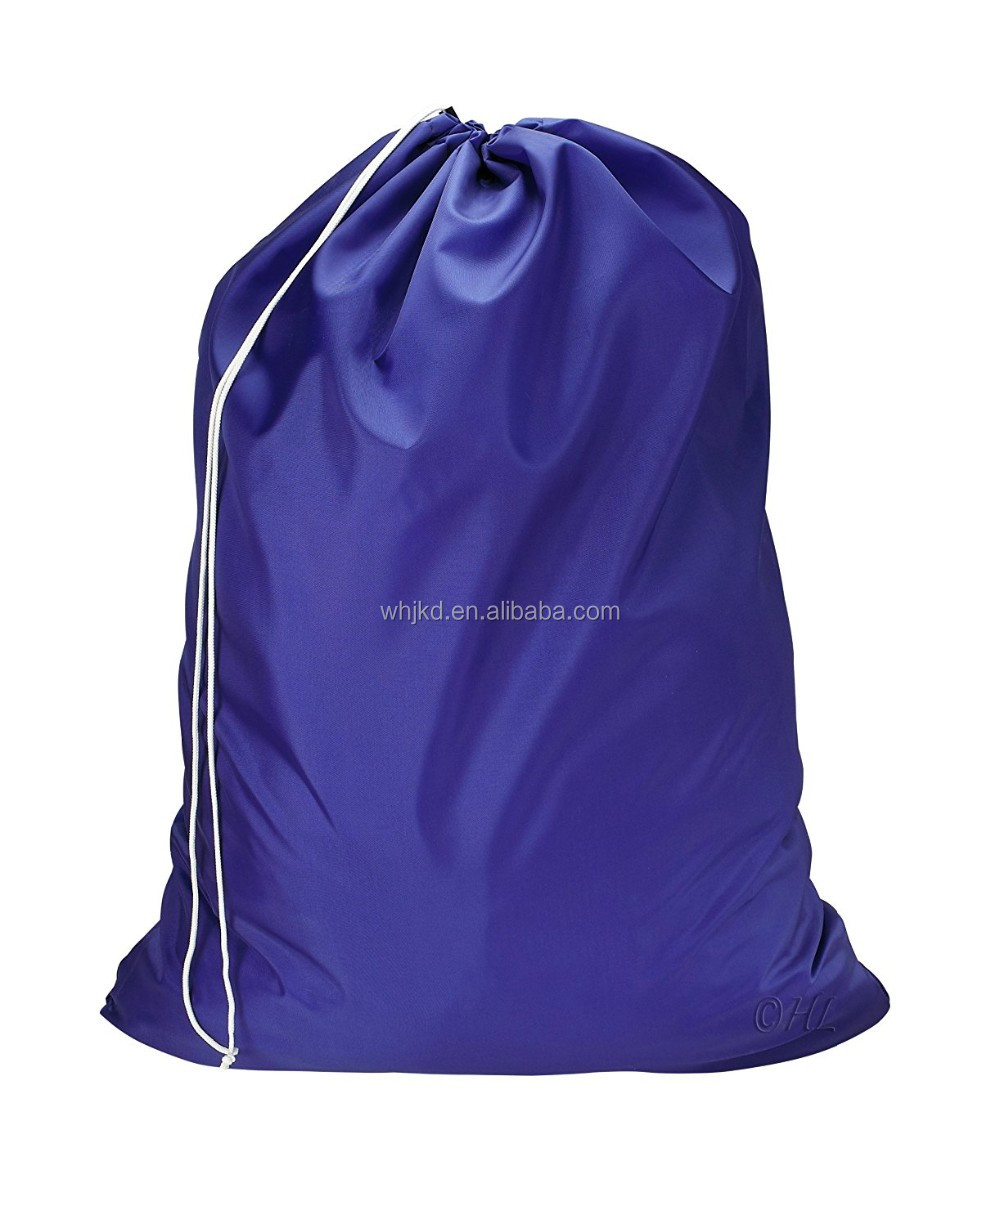 Hotel washable drawstring nylon laundry bags